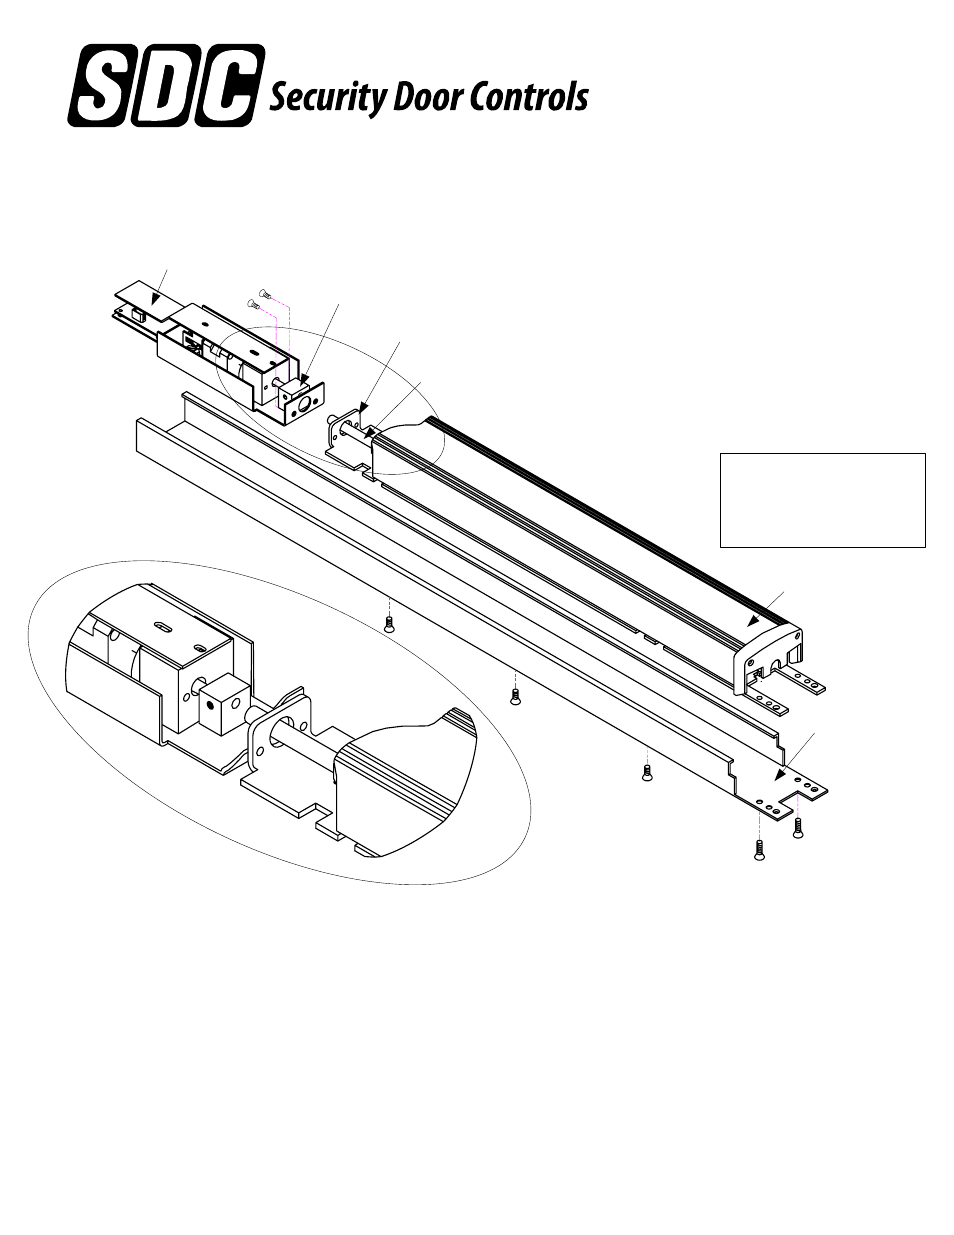 Sdc Lr100dmk Dor O Matic Electric Latch Retraction Device Kit 1490 Wiring Diagram User Manual 1 Page Also For